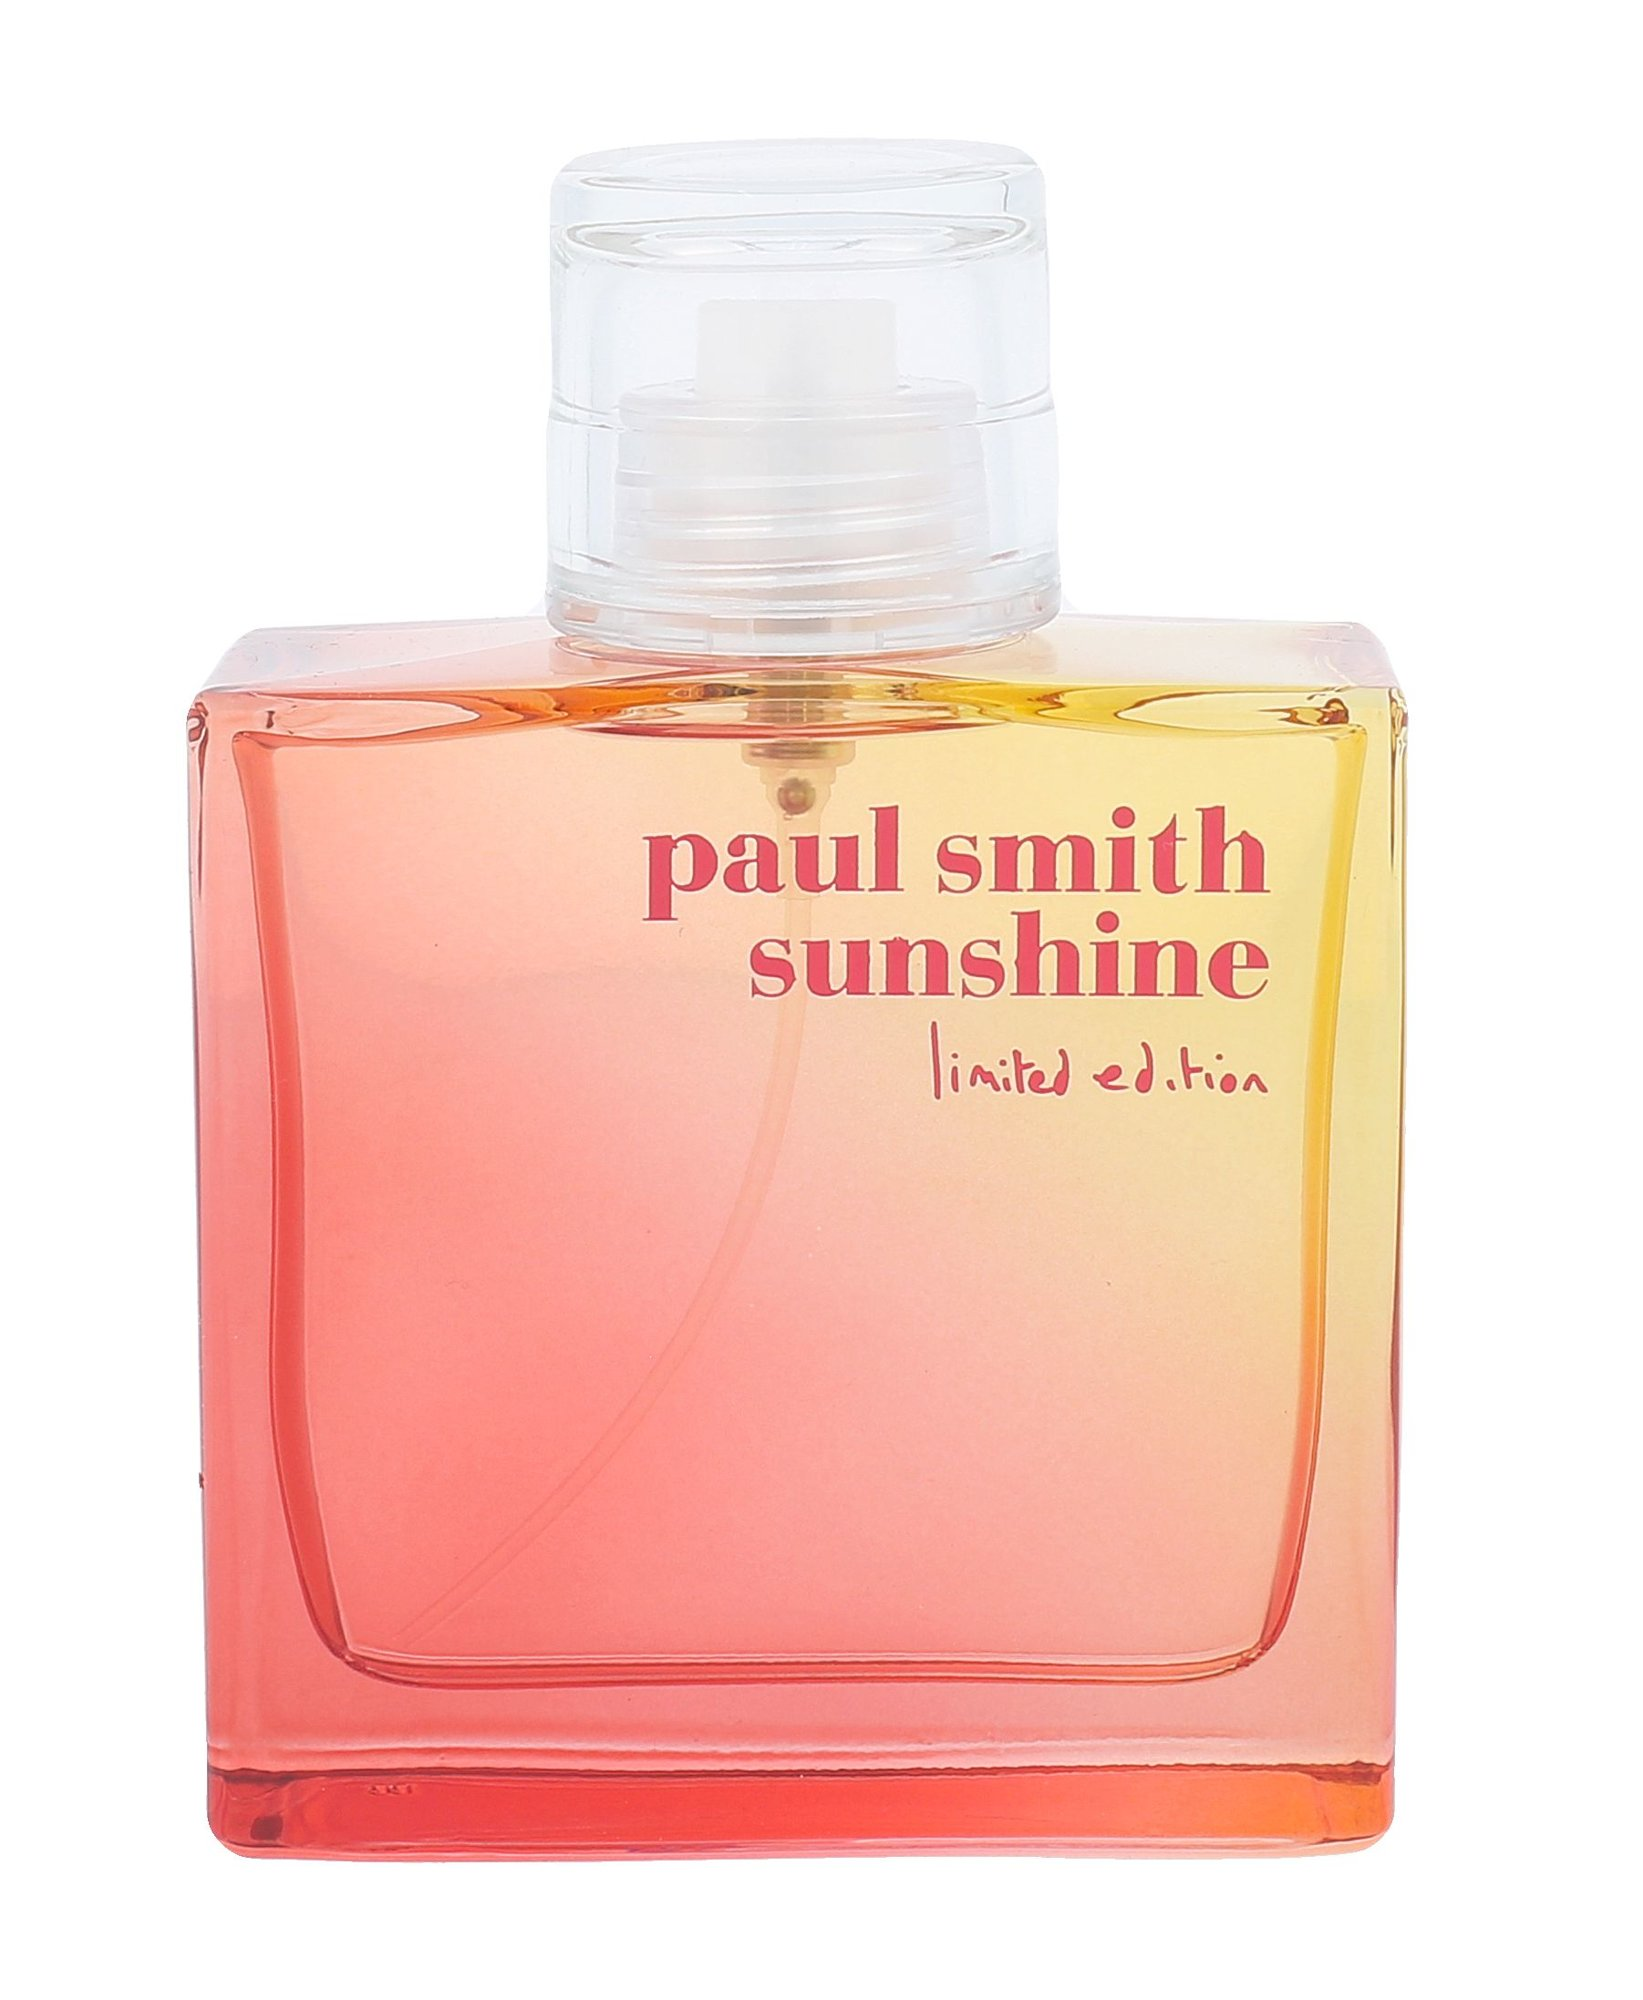 Paul Smith Sunshine 2015 EDT 100ml